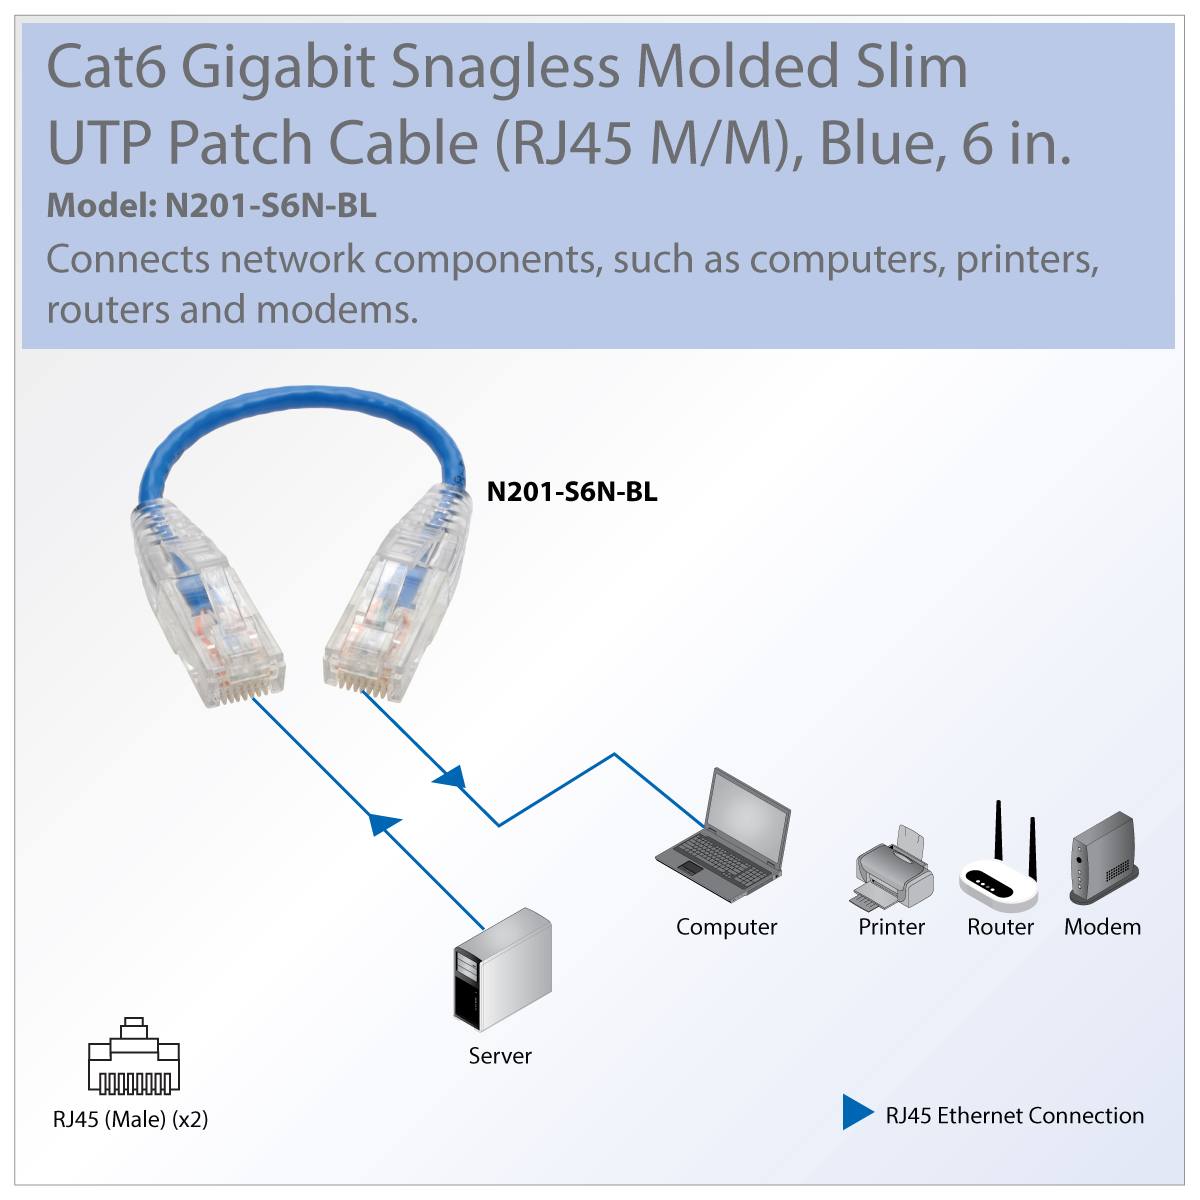 Tripp Lite Cat6 Gigabit Snagless Molded Slim Patch Cable Rj45 M Catalog Product Computer Cables Utp Installs Easily Even In Tight Spaces